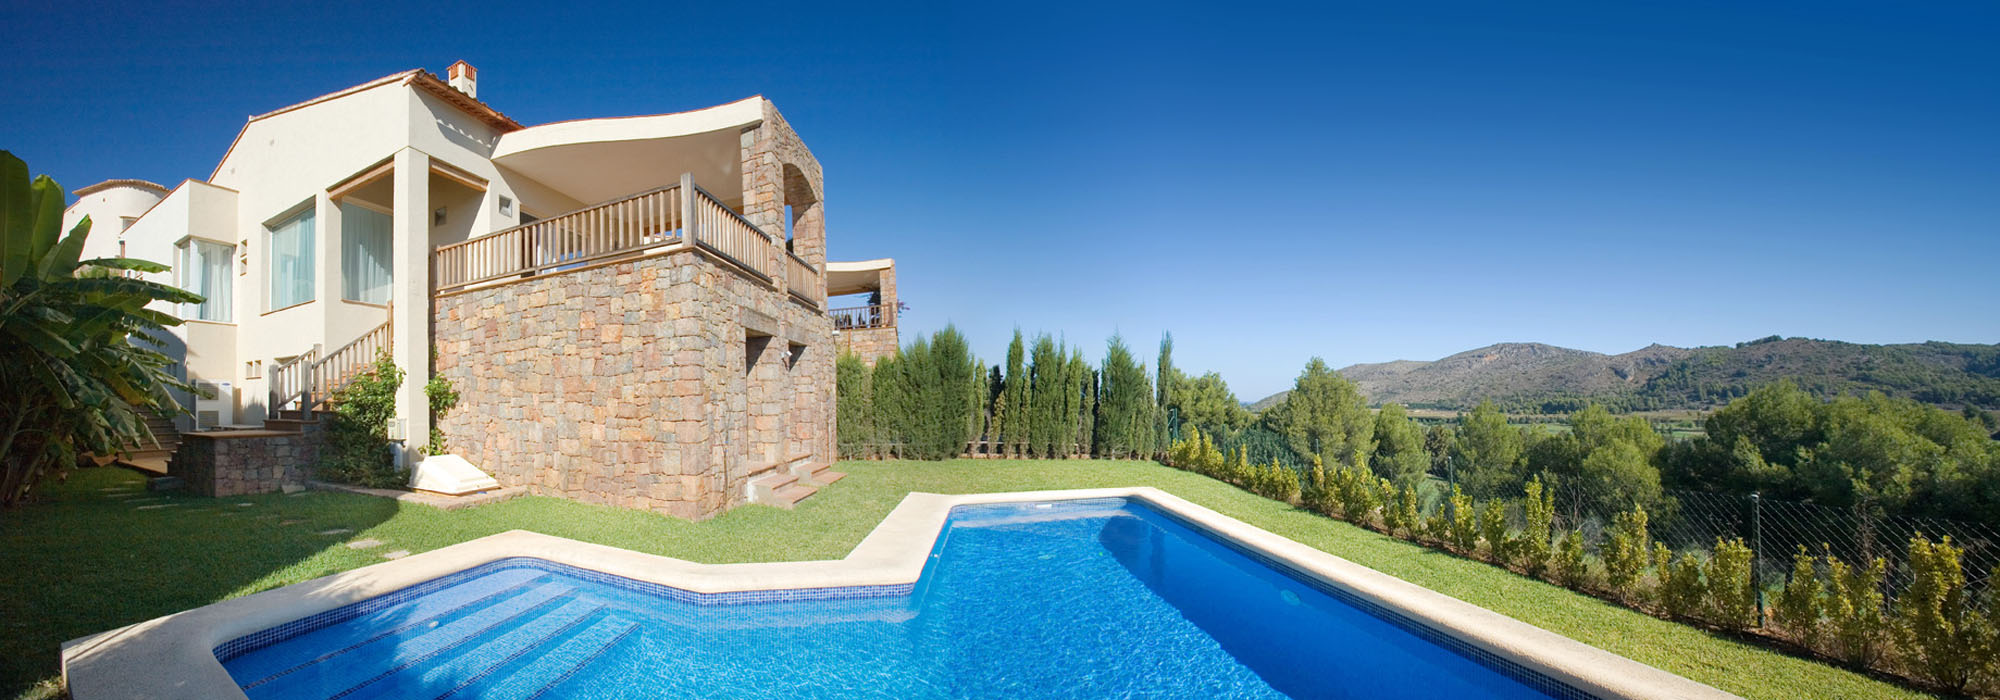 La Sella Golf villas